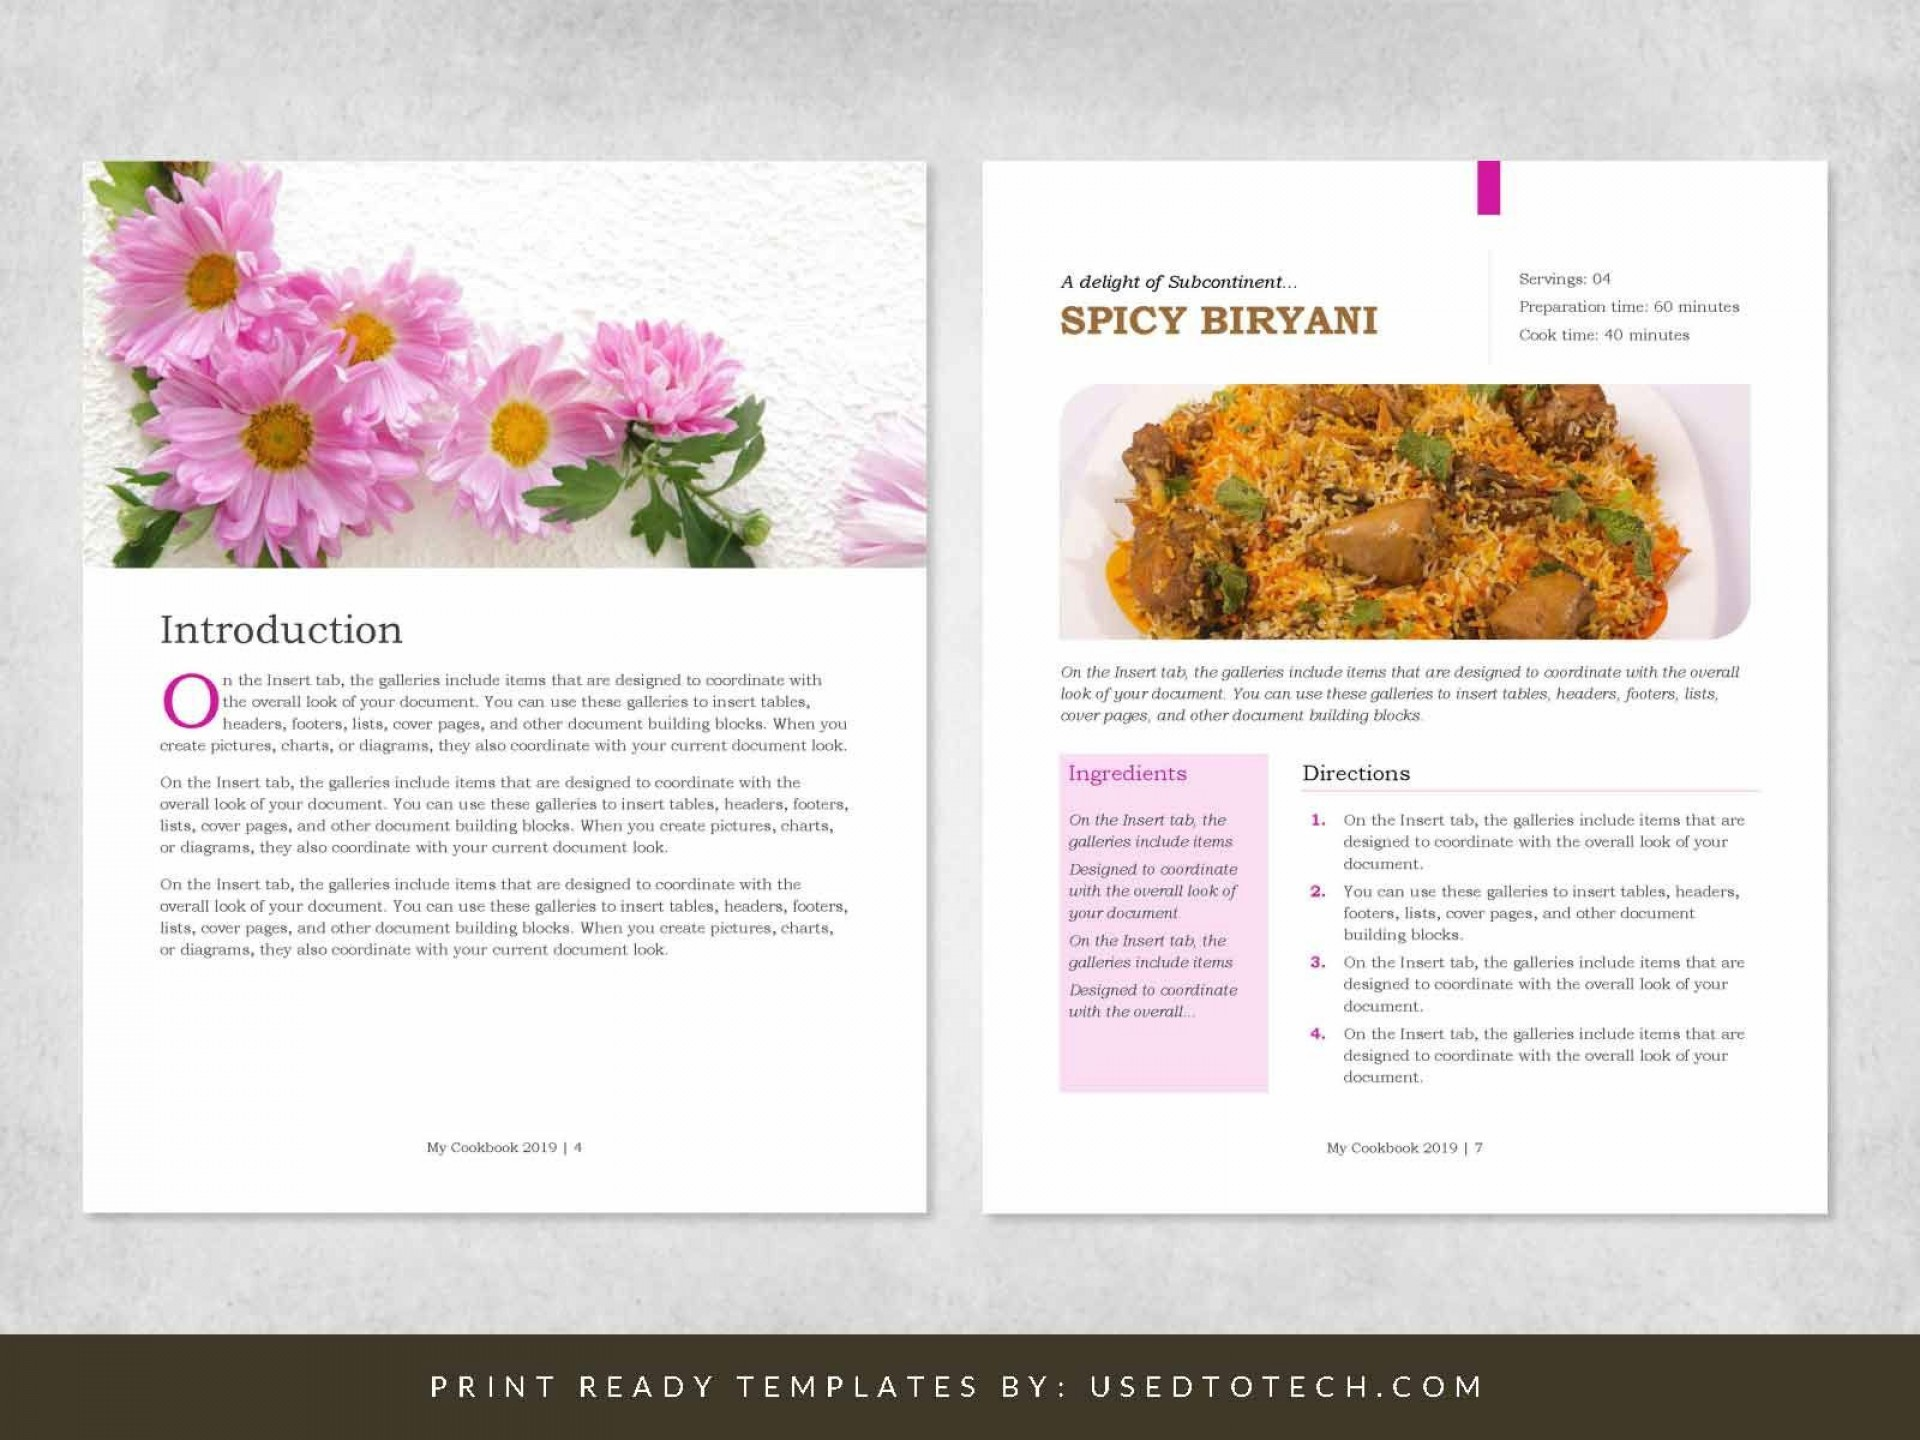 000 Simple Free Make Your Own Cookbook Template Download Inspiration 1920